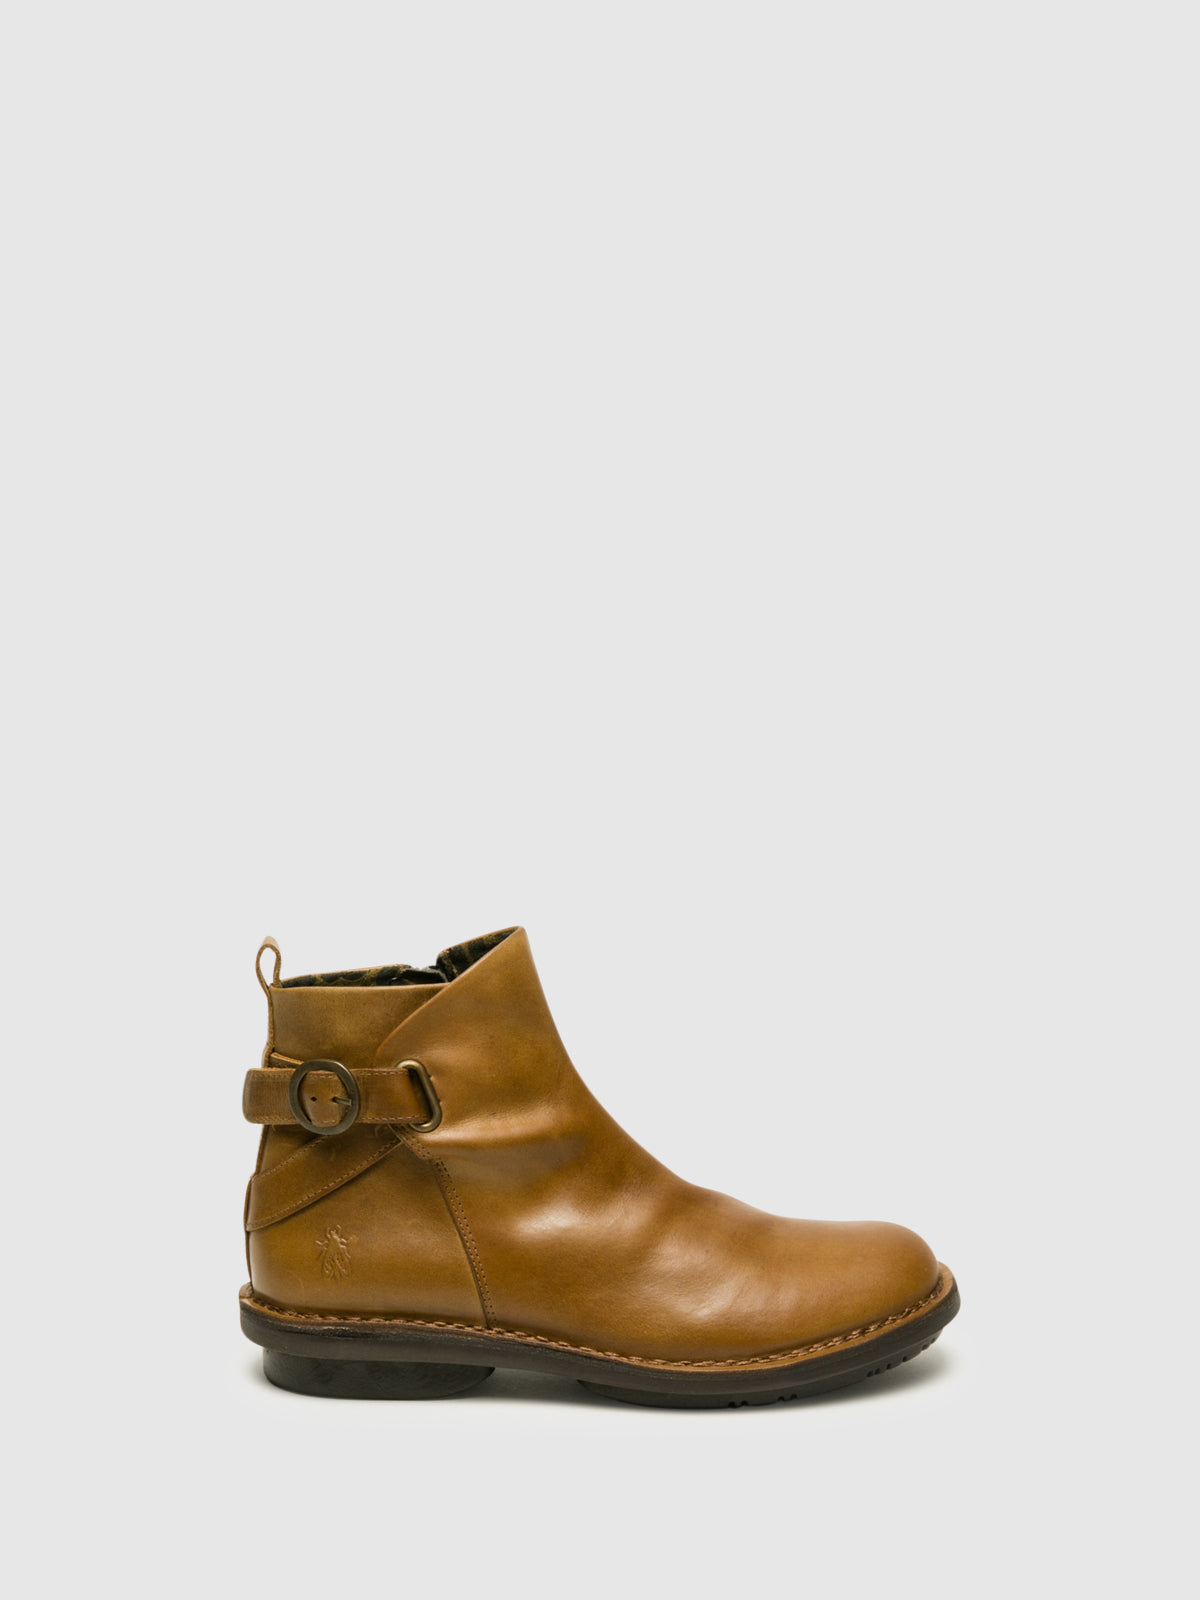 Fly London SandyBrown Buckle Ankle Boots